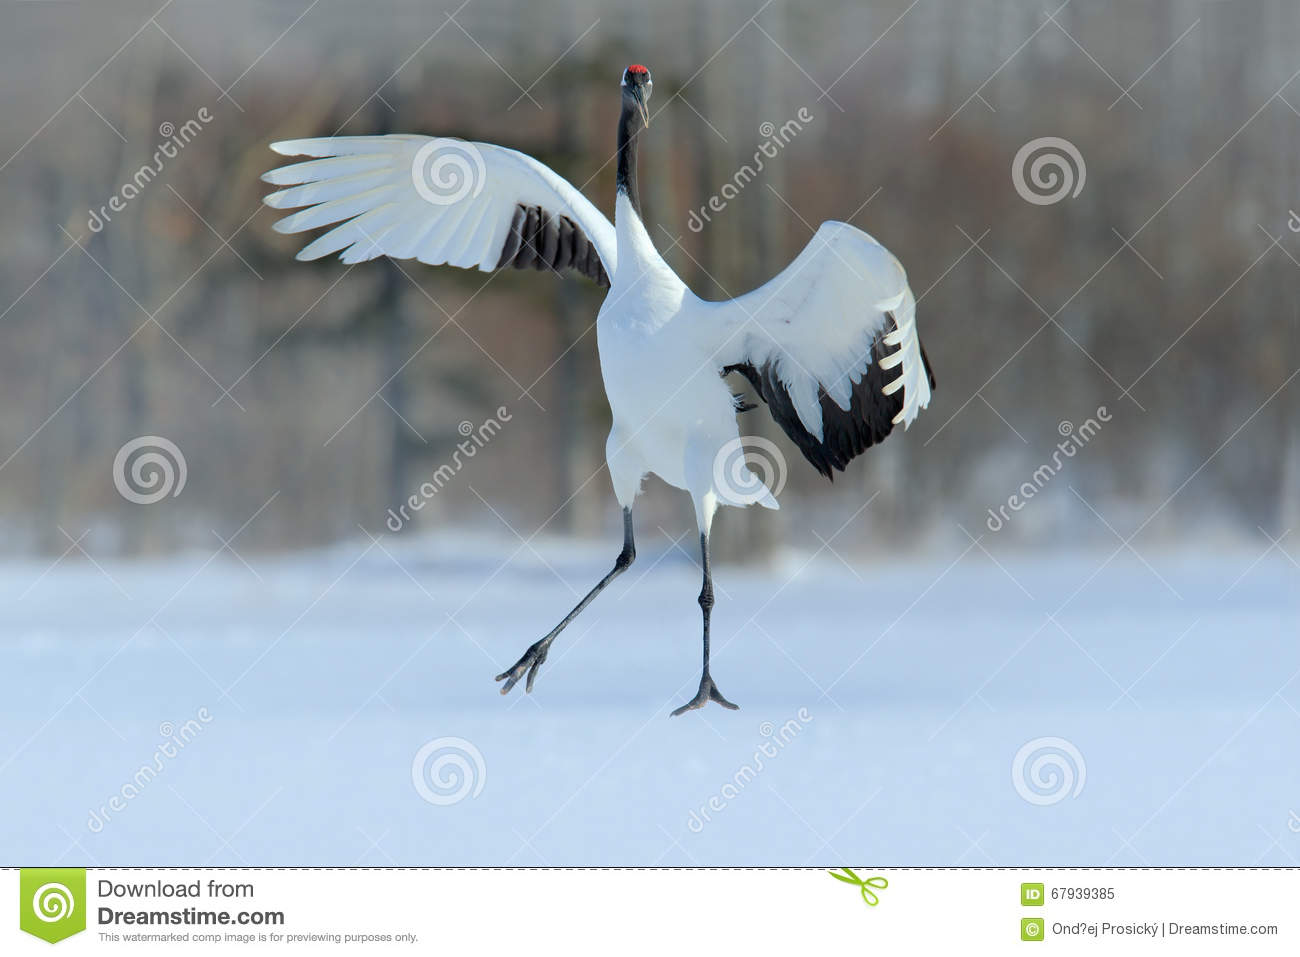 Red-crowned crane, Grus japonensis, flying white bird with open wing, with snow storm, winter scene, Hokkaido, Japan